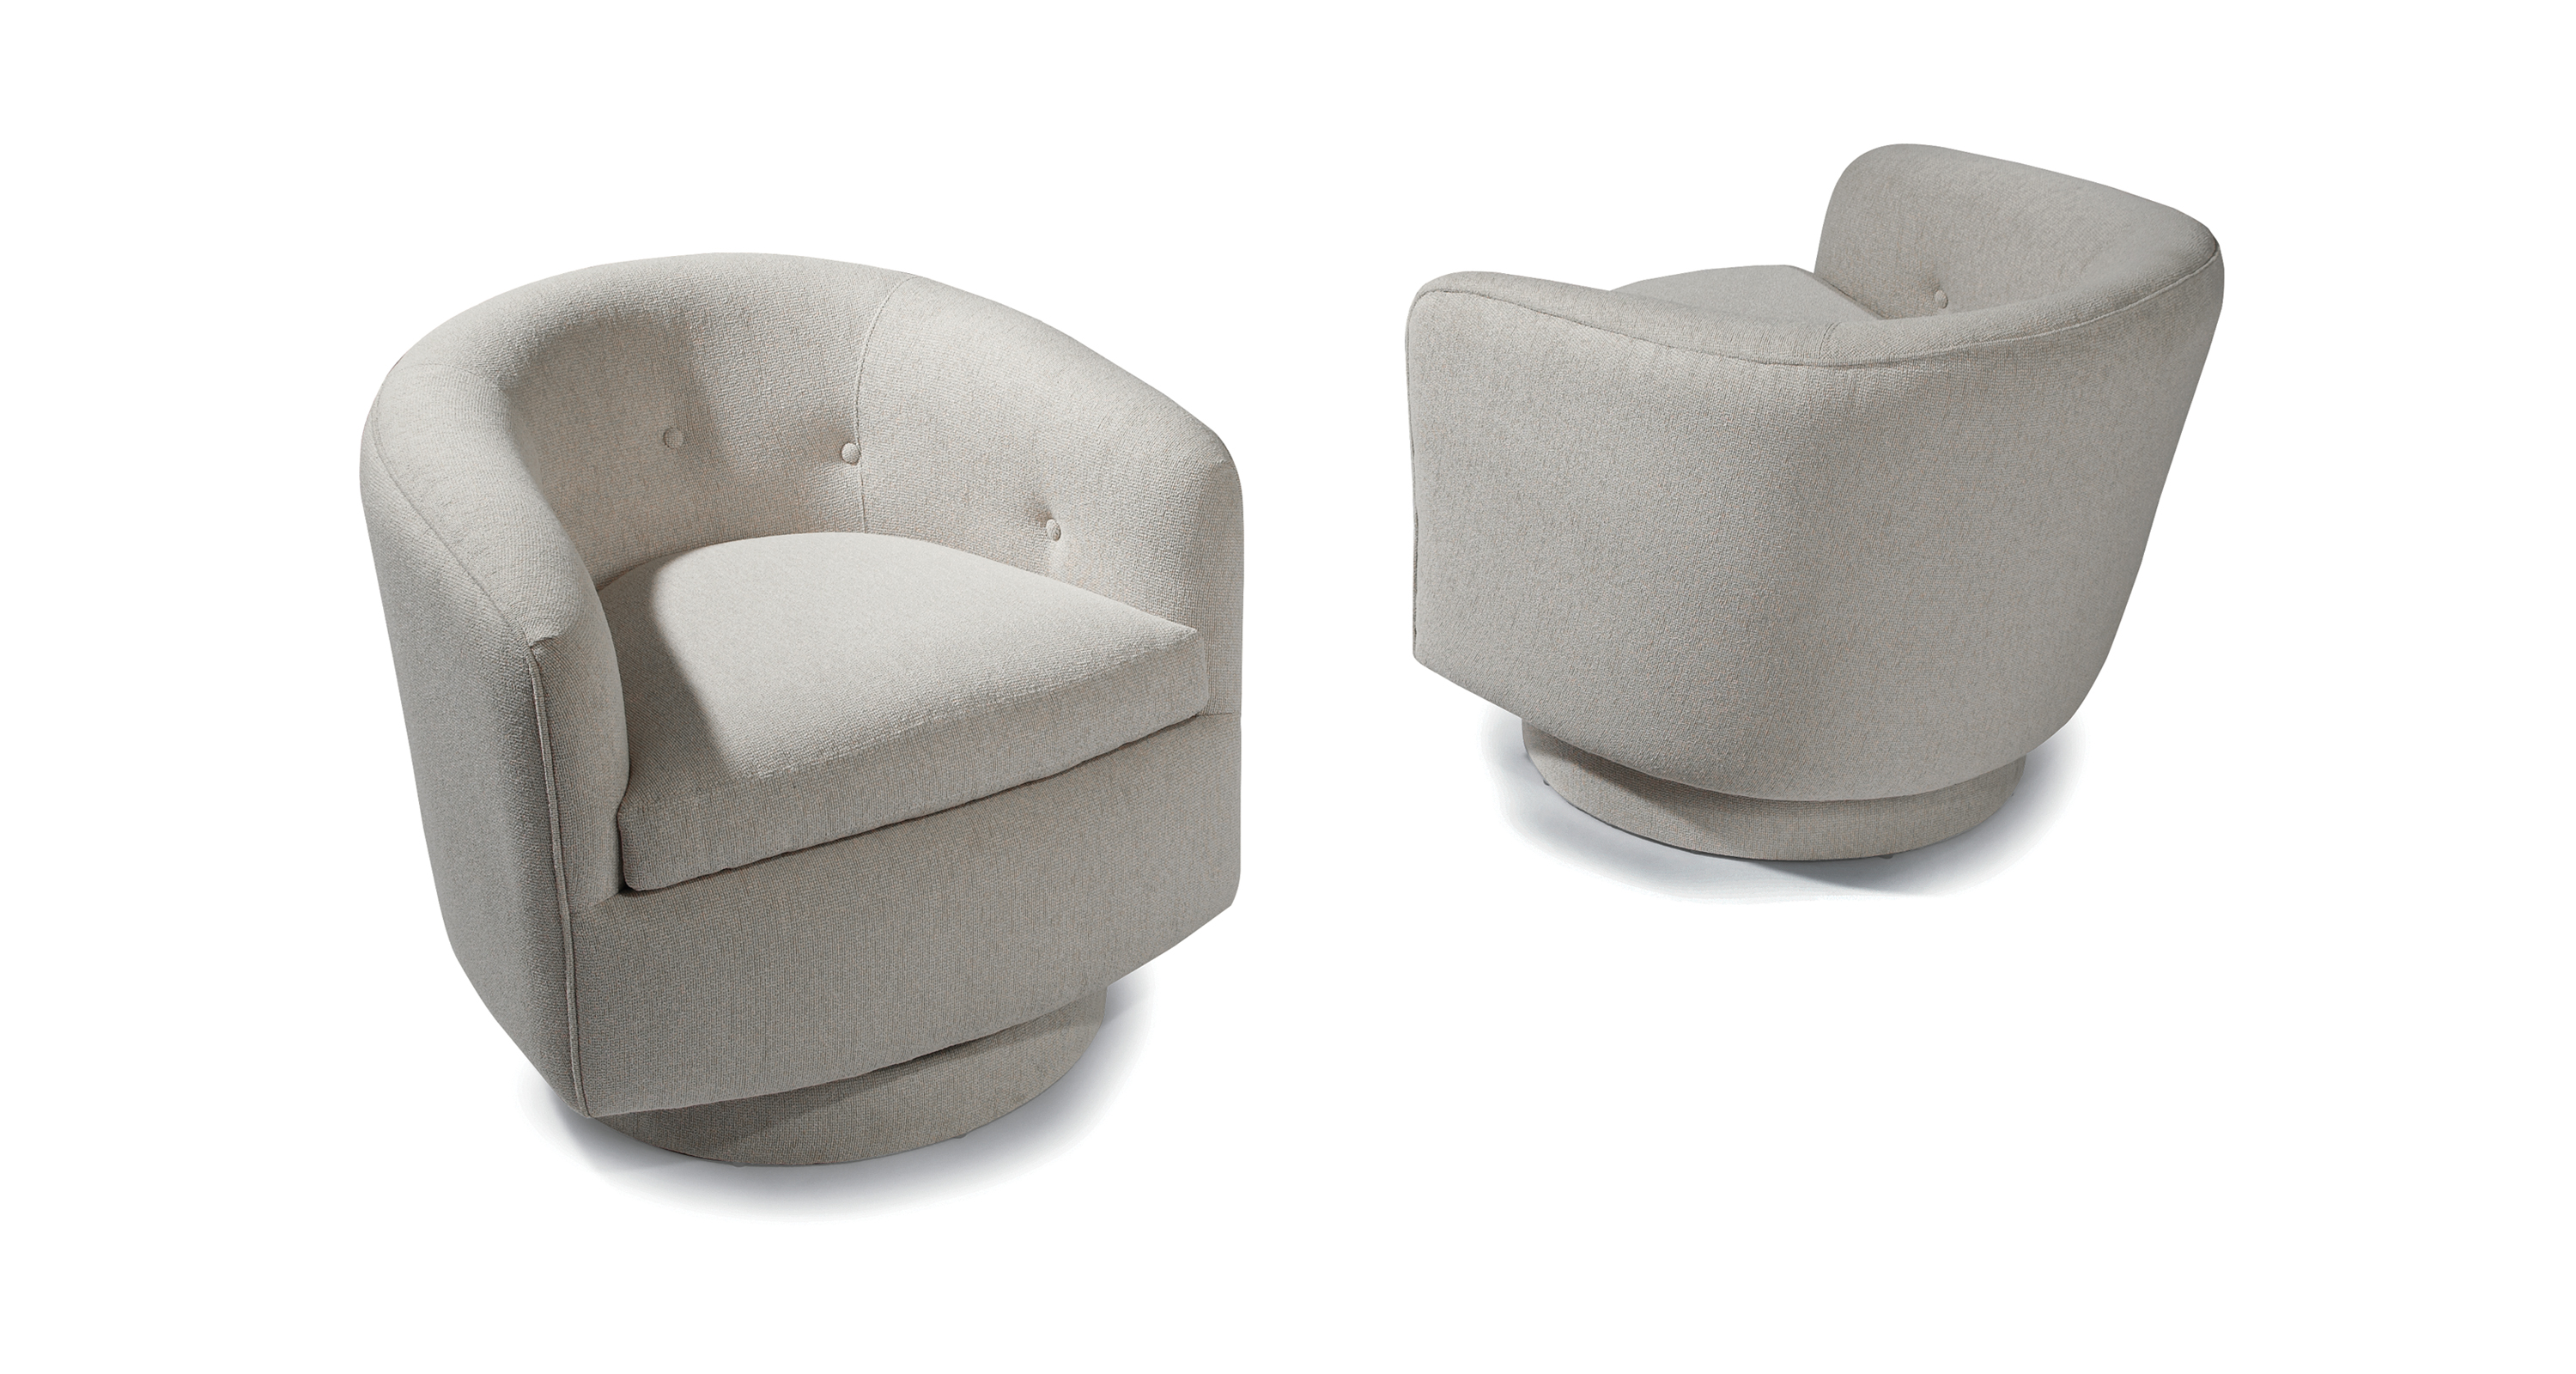 Roxy Swivel-Tilt Tub Chair